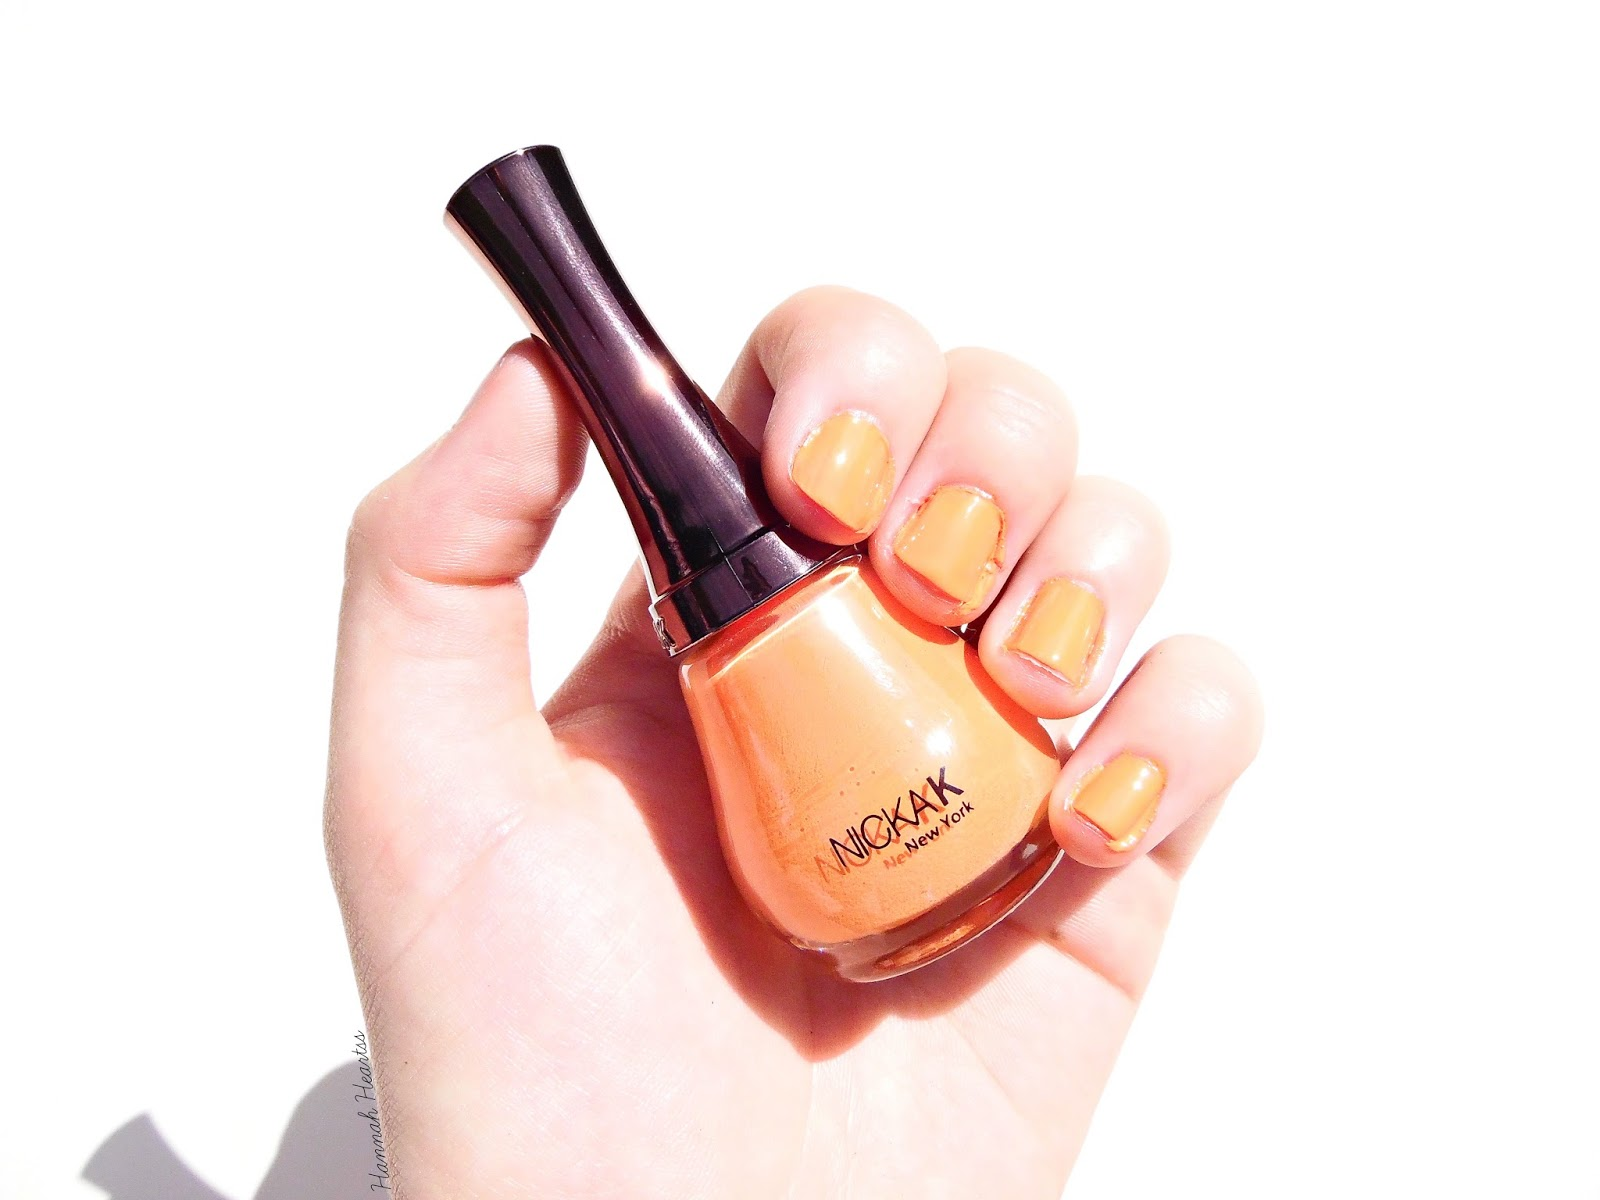 Nicka K Bright Orange Swatch